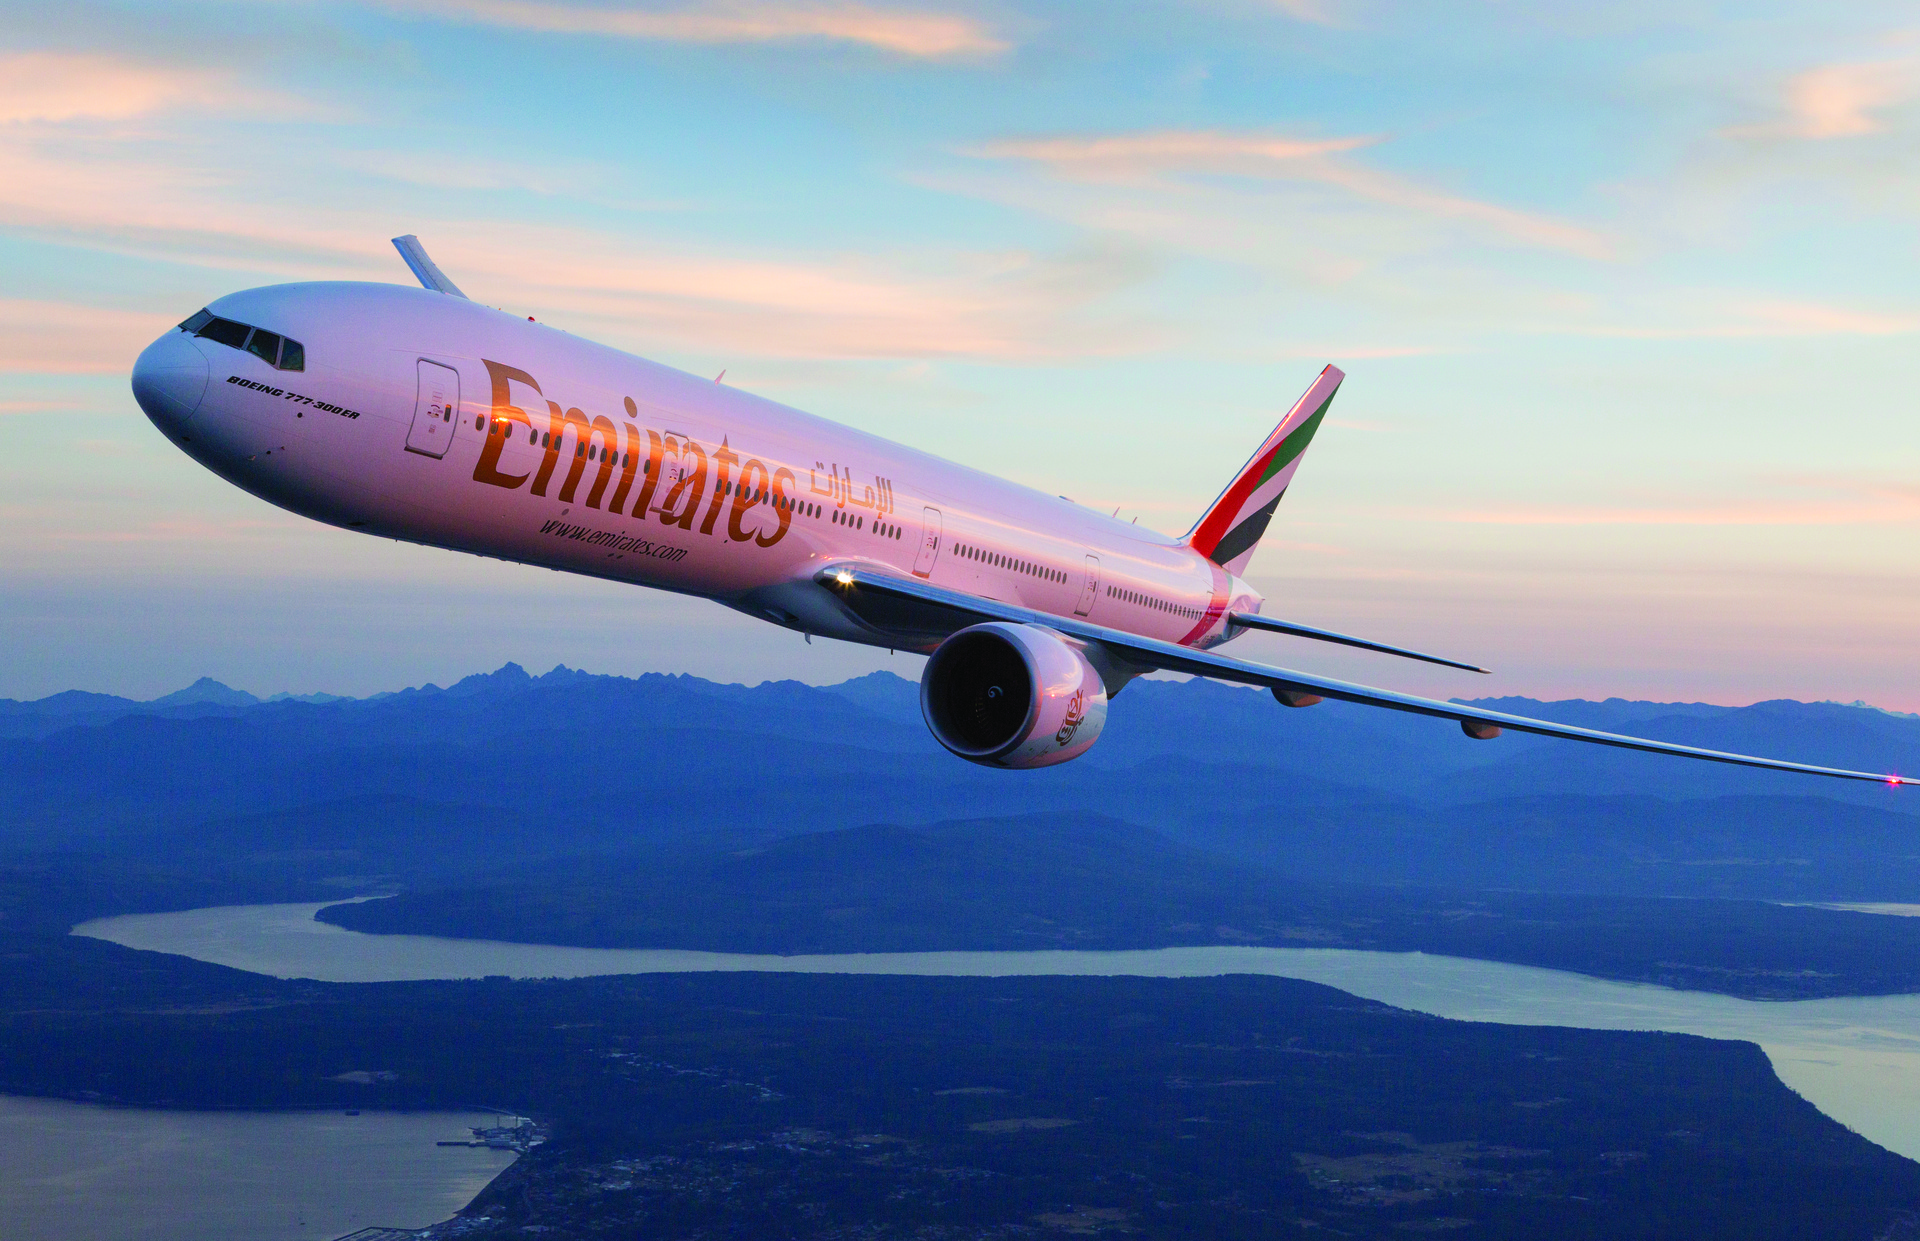 Emirates counts down to the launch of the new Dubai to Zagreb, Croatia route on 1 June 2017